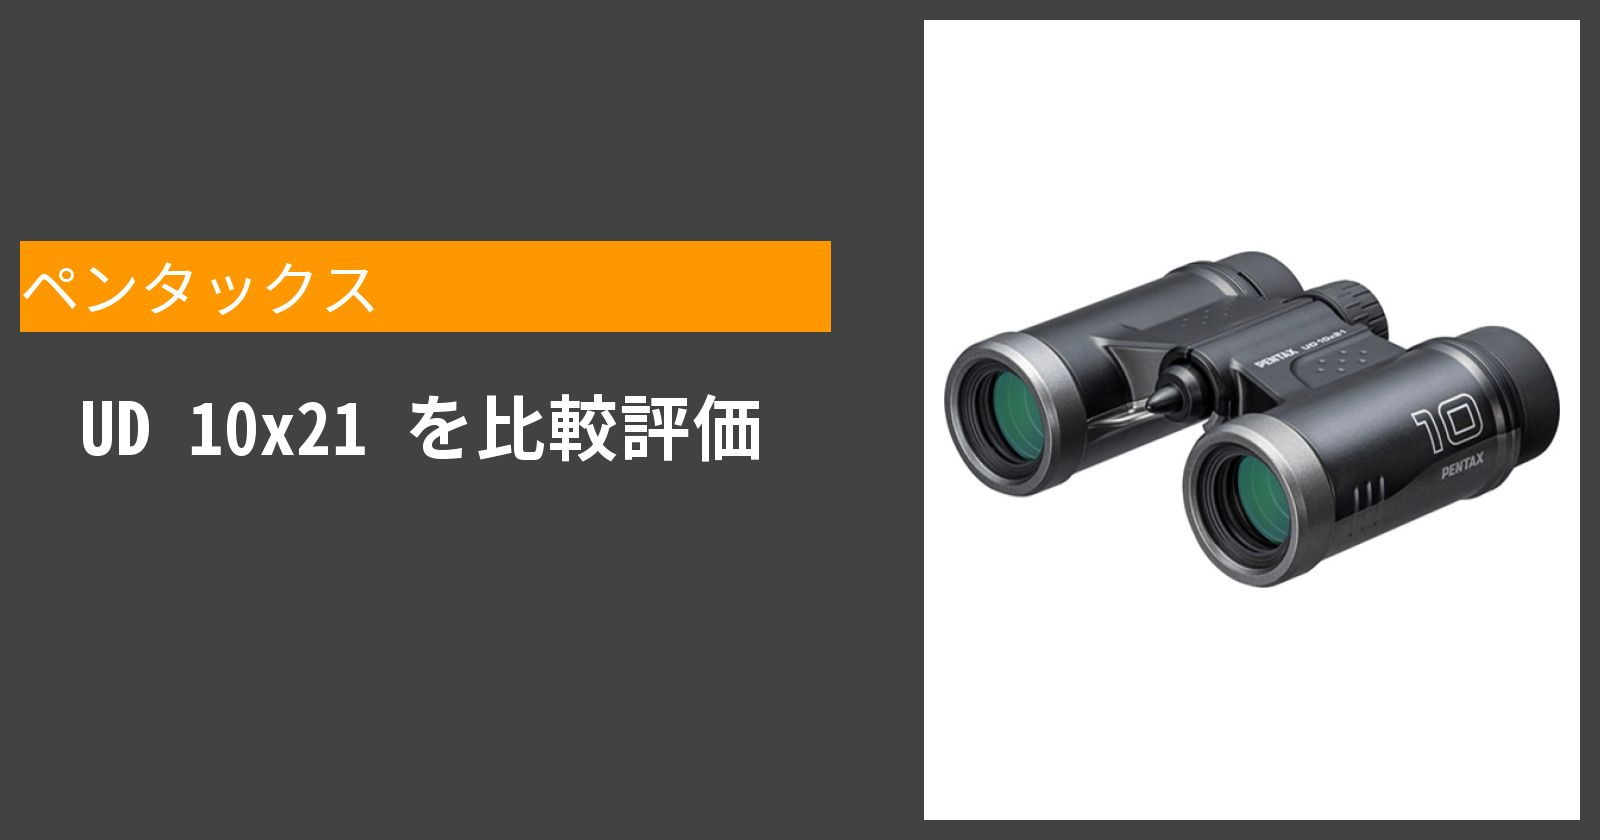 UD 10x21を徹底評価